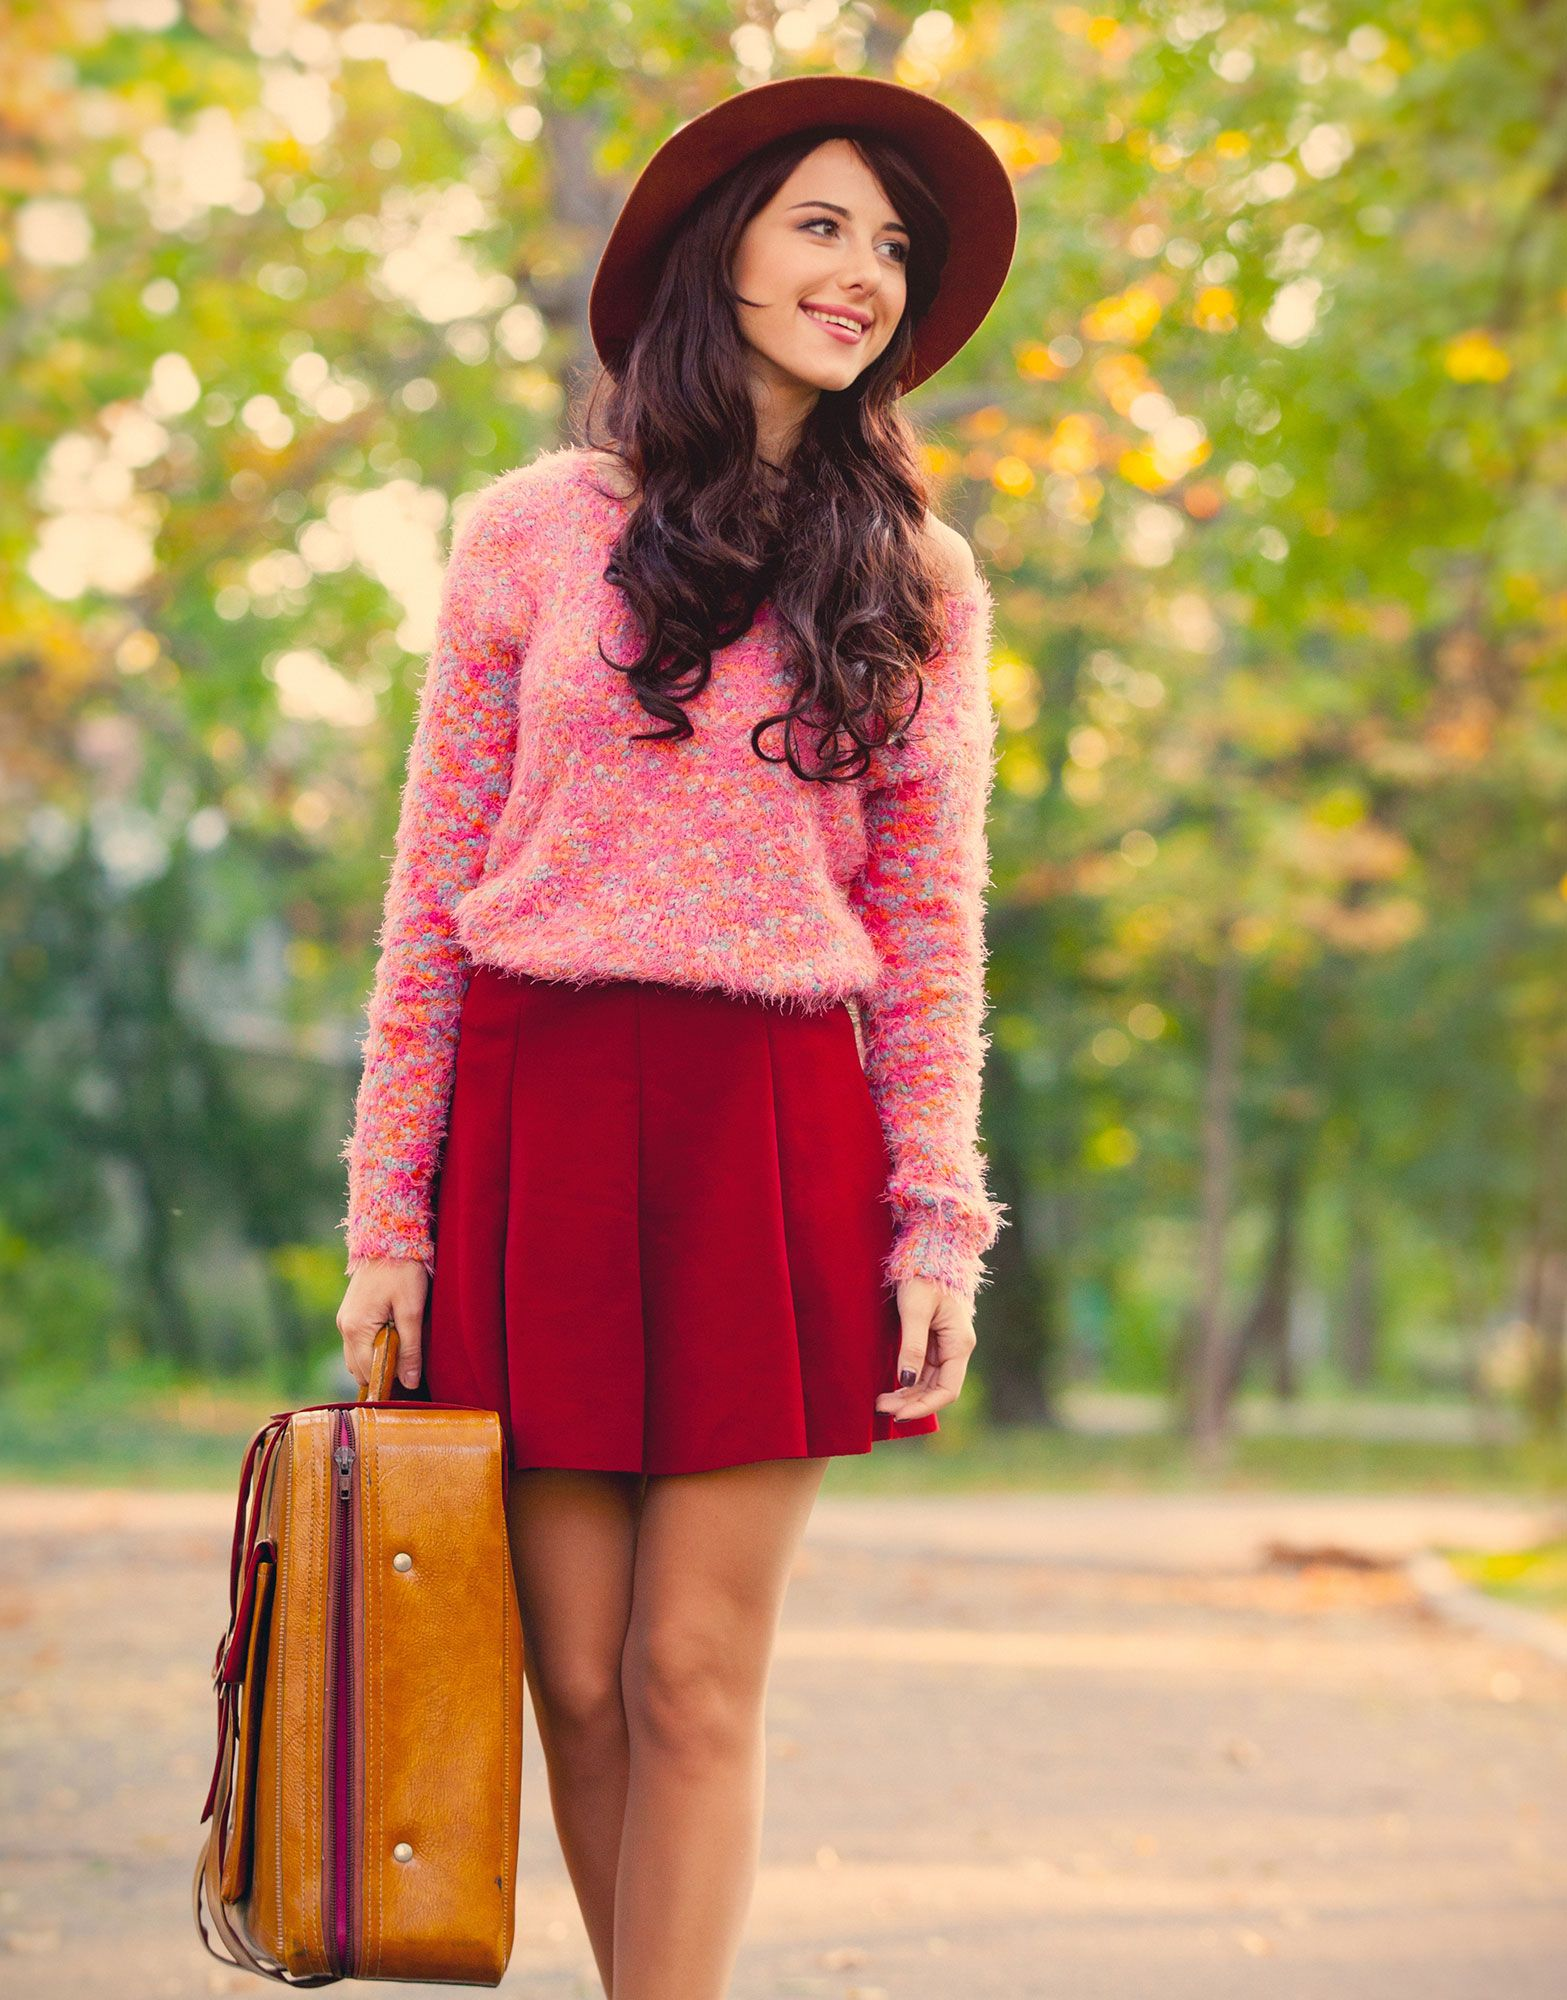 fashion red autumn colors